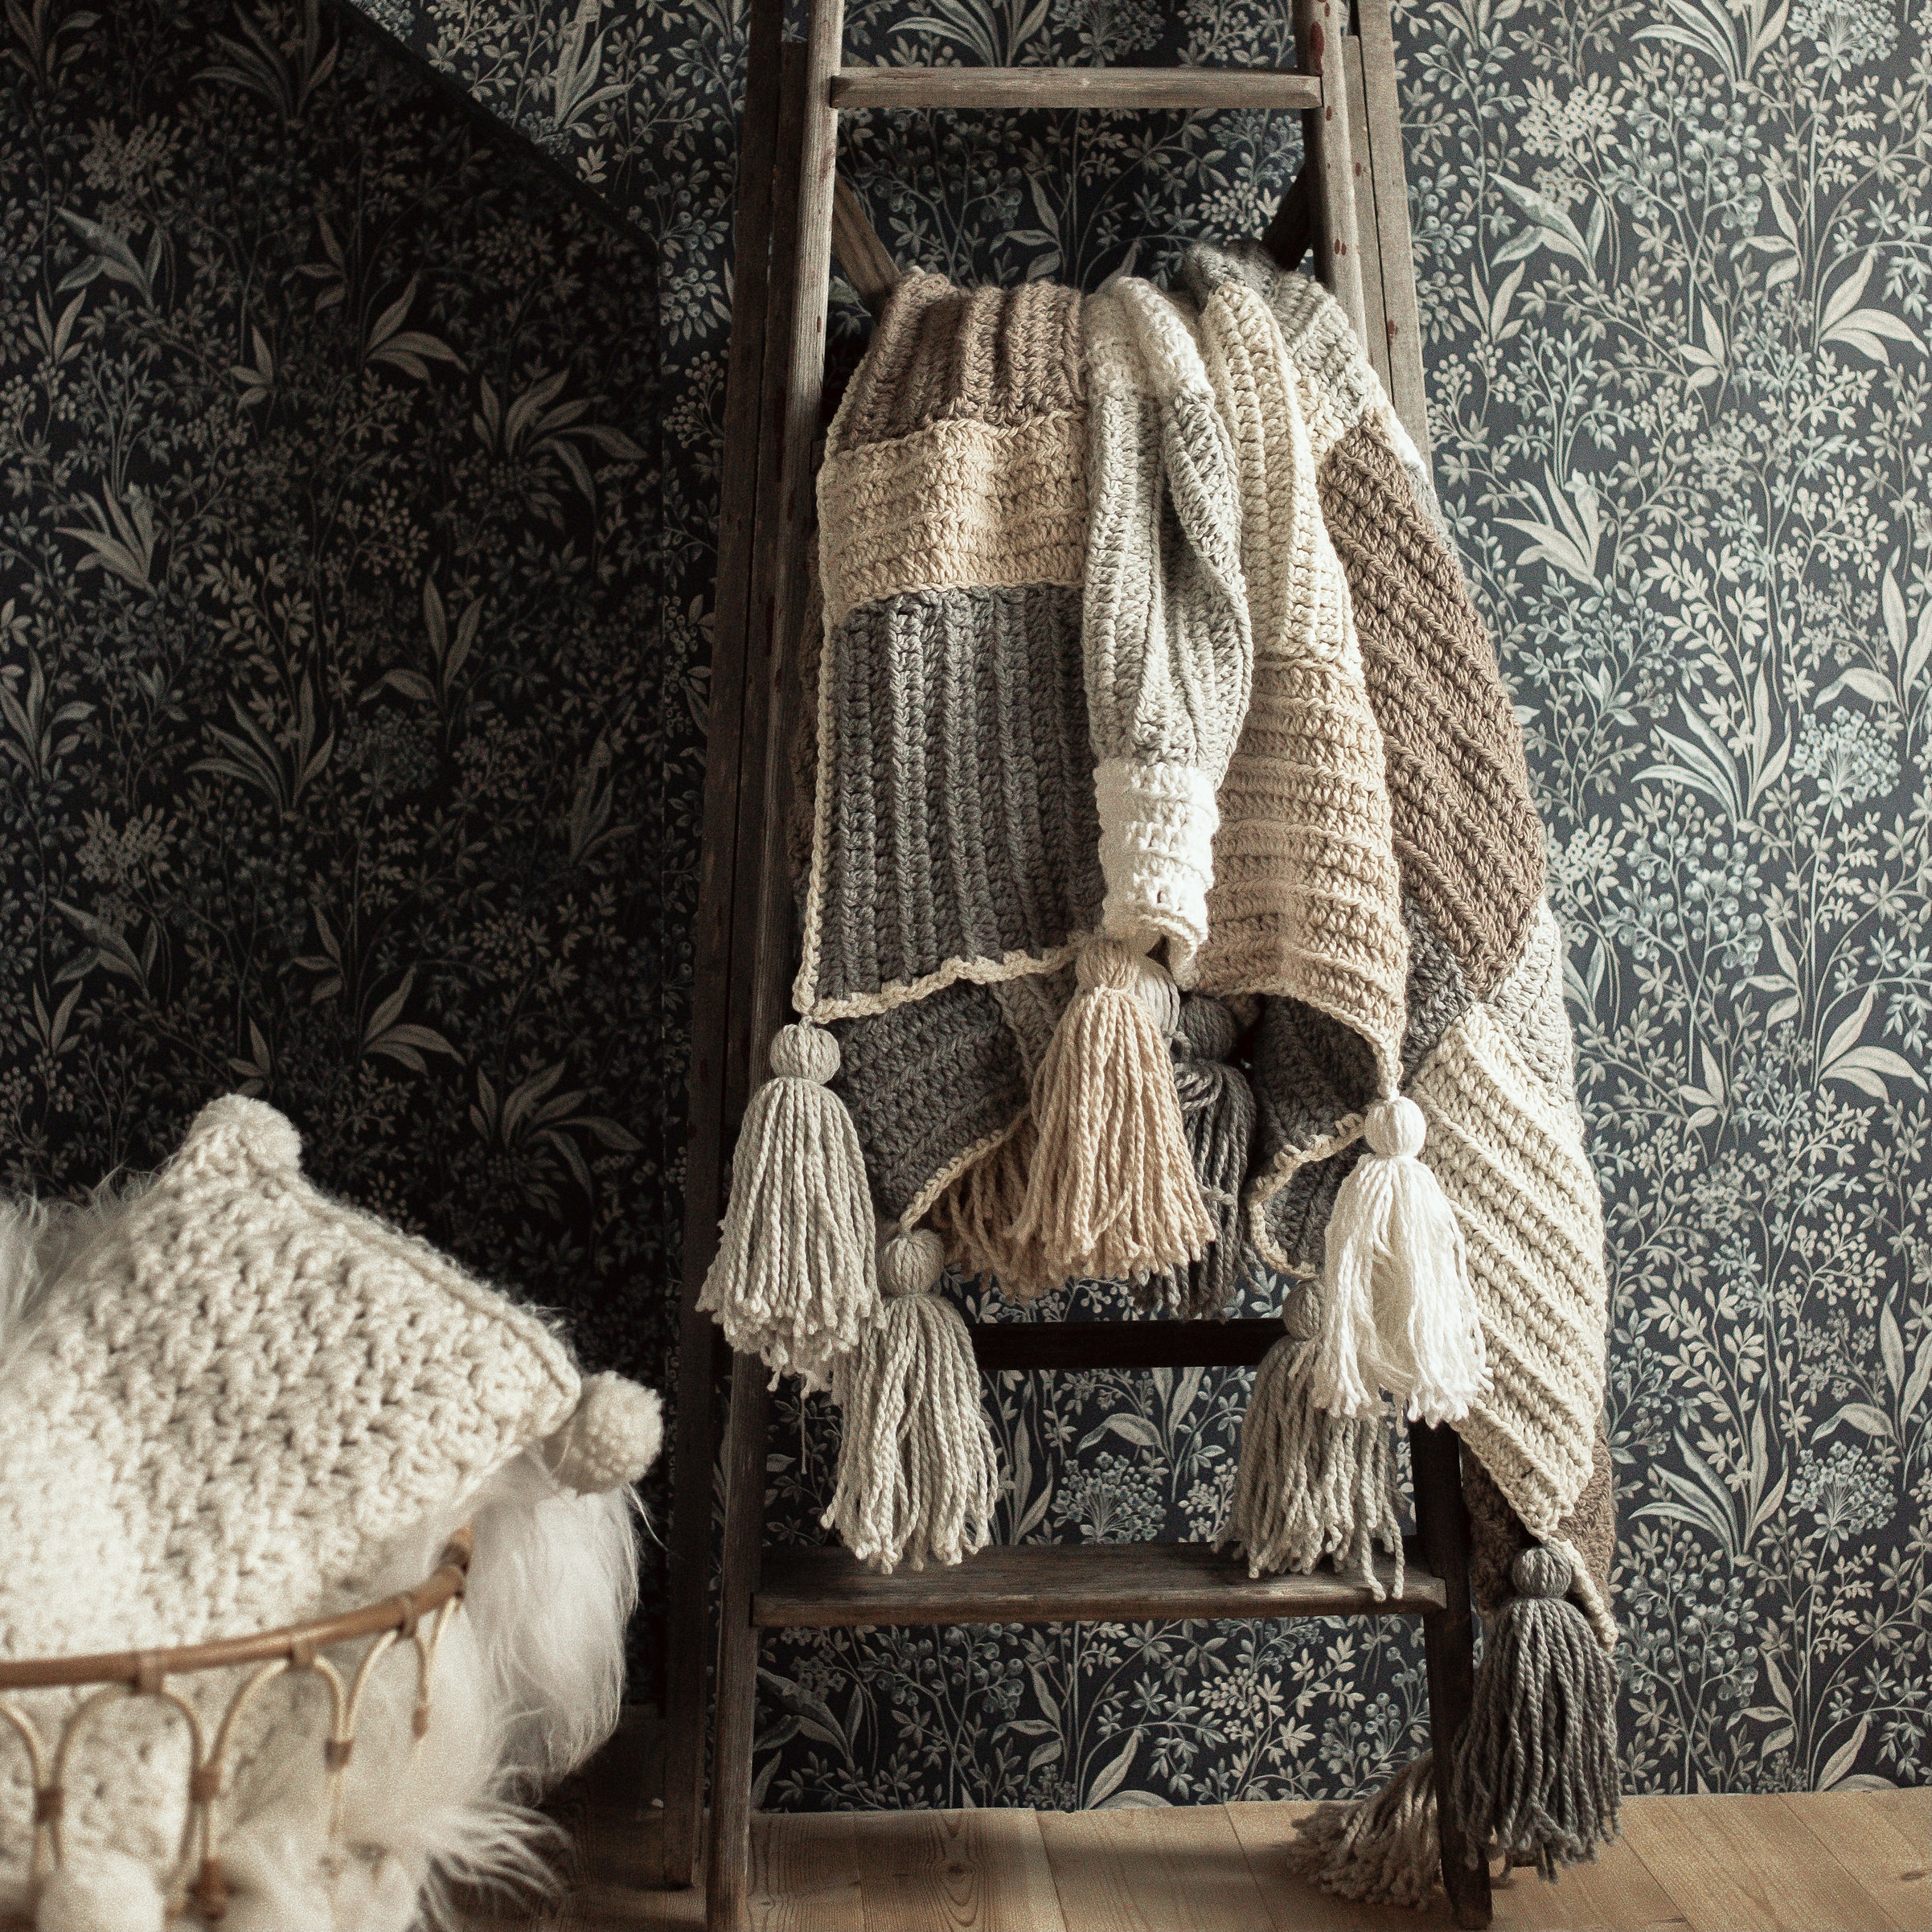 A moody pictures with the Stay Awhile Boho Blanket in soft beige and brown colors draped over a vintage latter and a cream coloured Fluffy Puffy Pillow placed in a wicker basket next to it